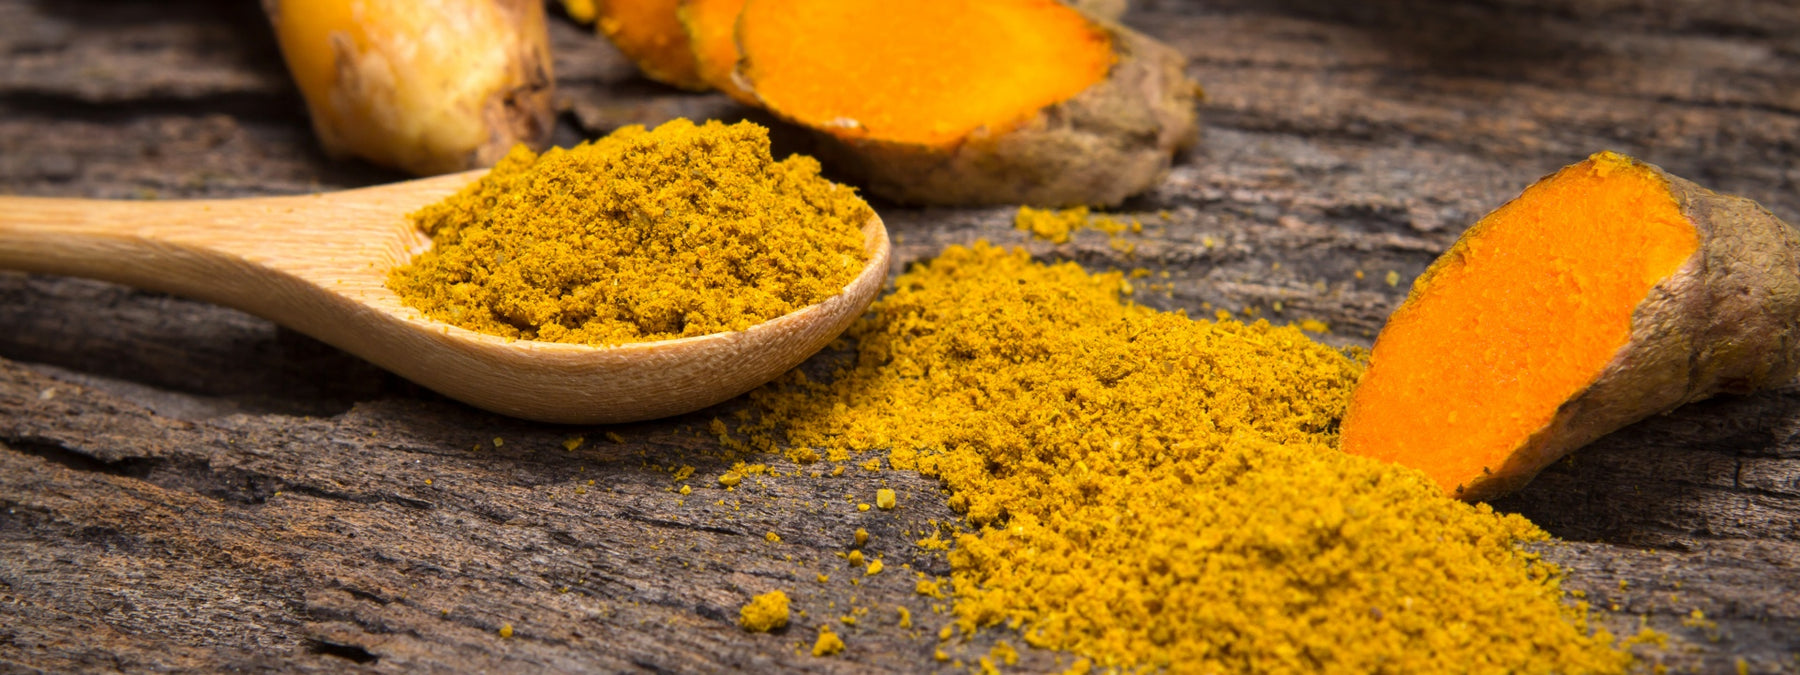 10 Turmeric Benefits - Remarkably Better Than Prescription Drugs?